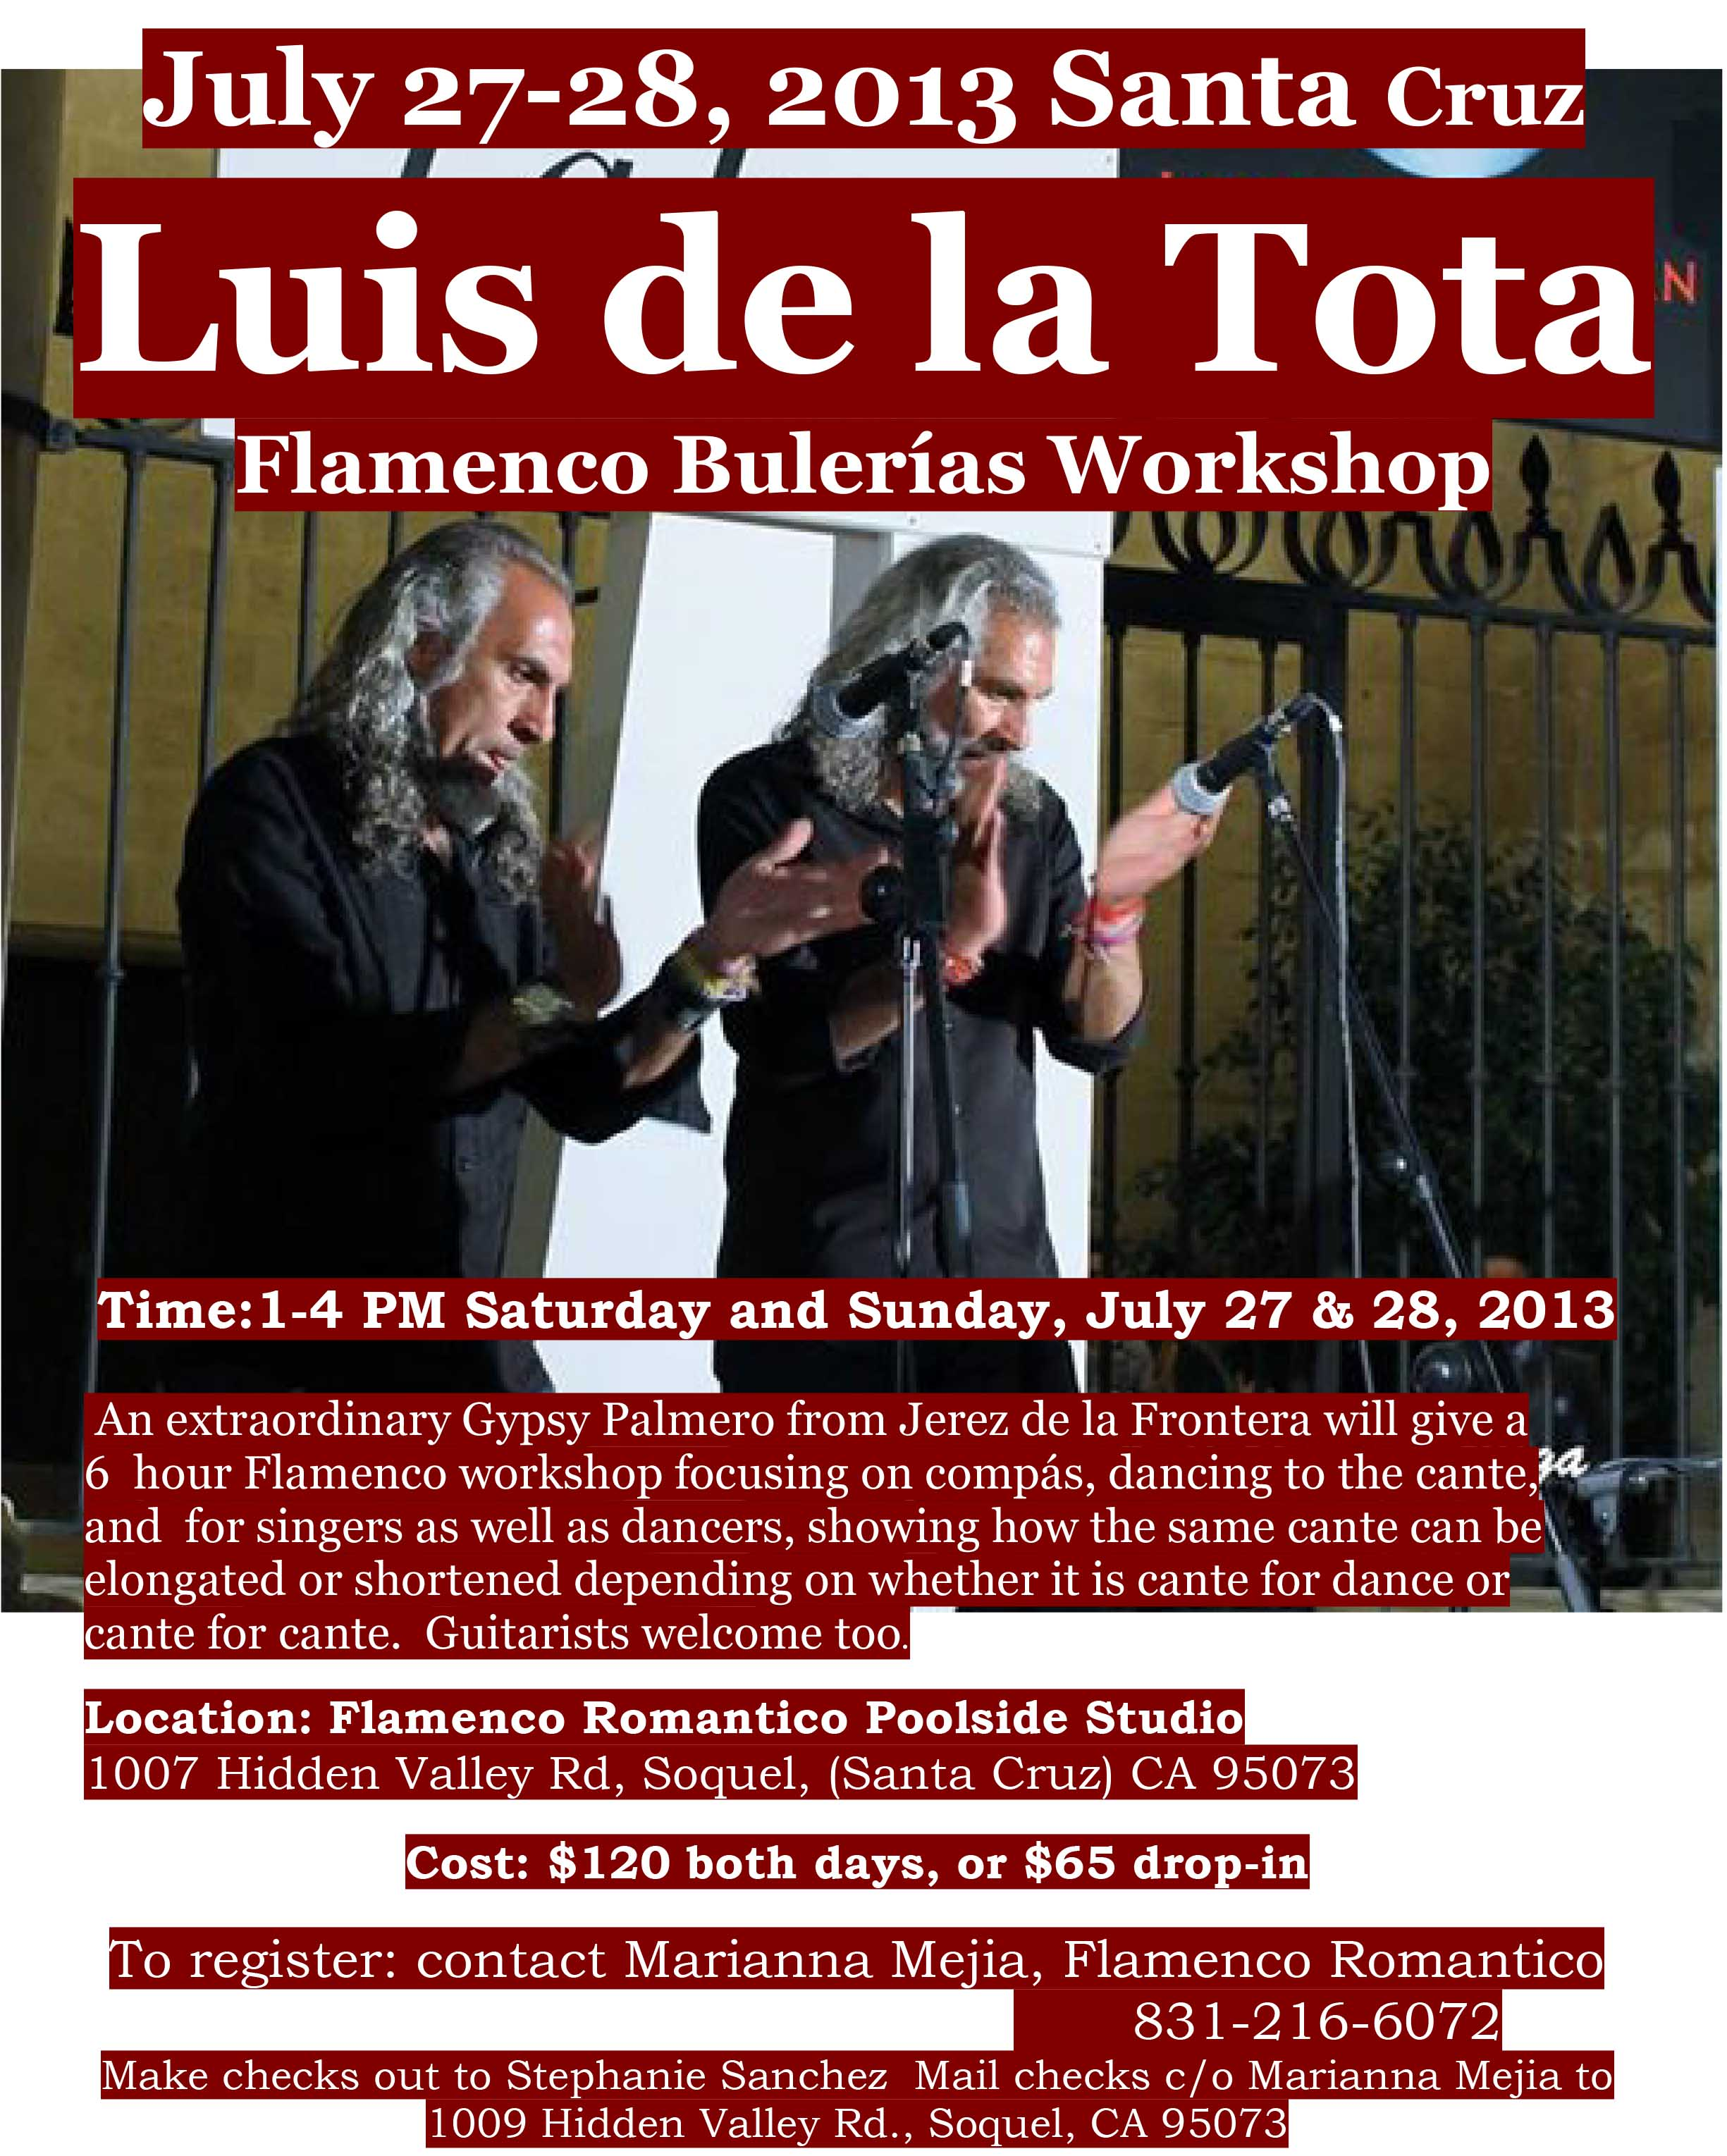 Luis de la Tota Flamenco Workshop 2013